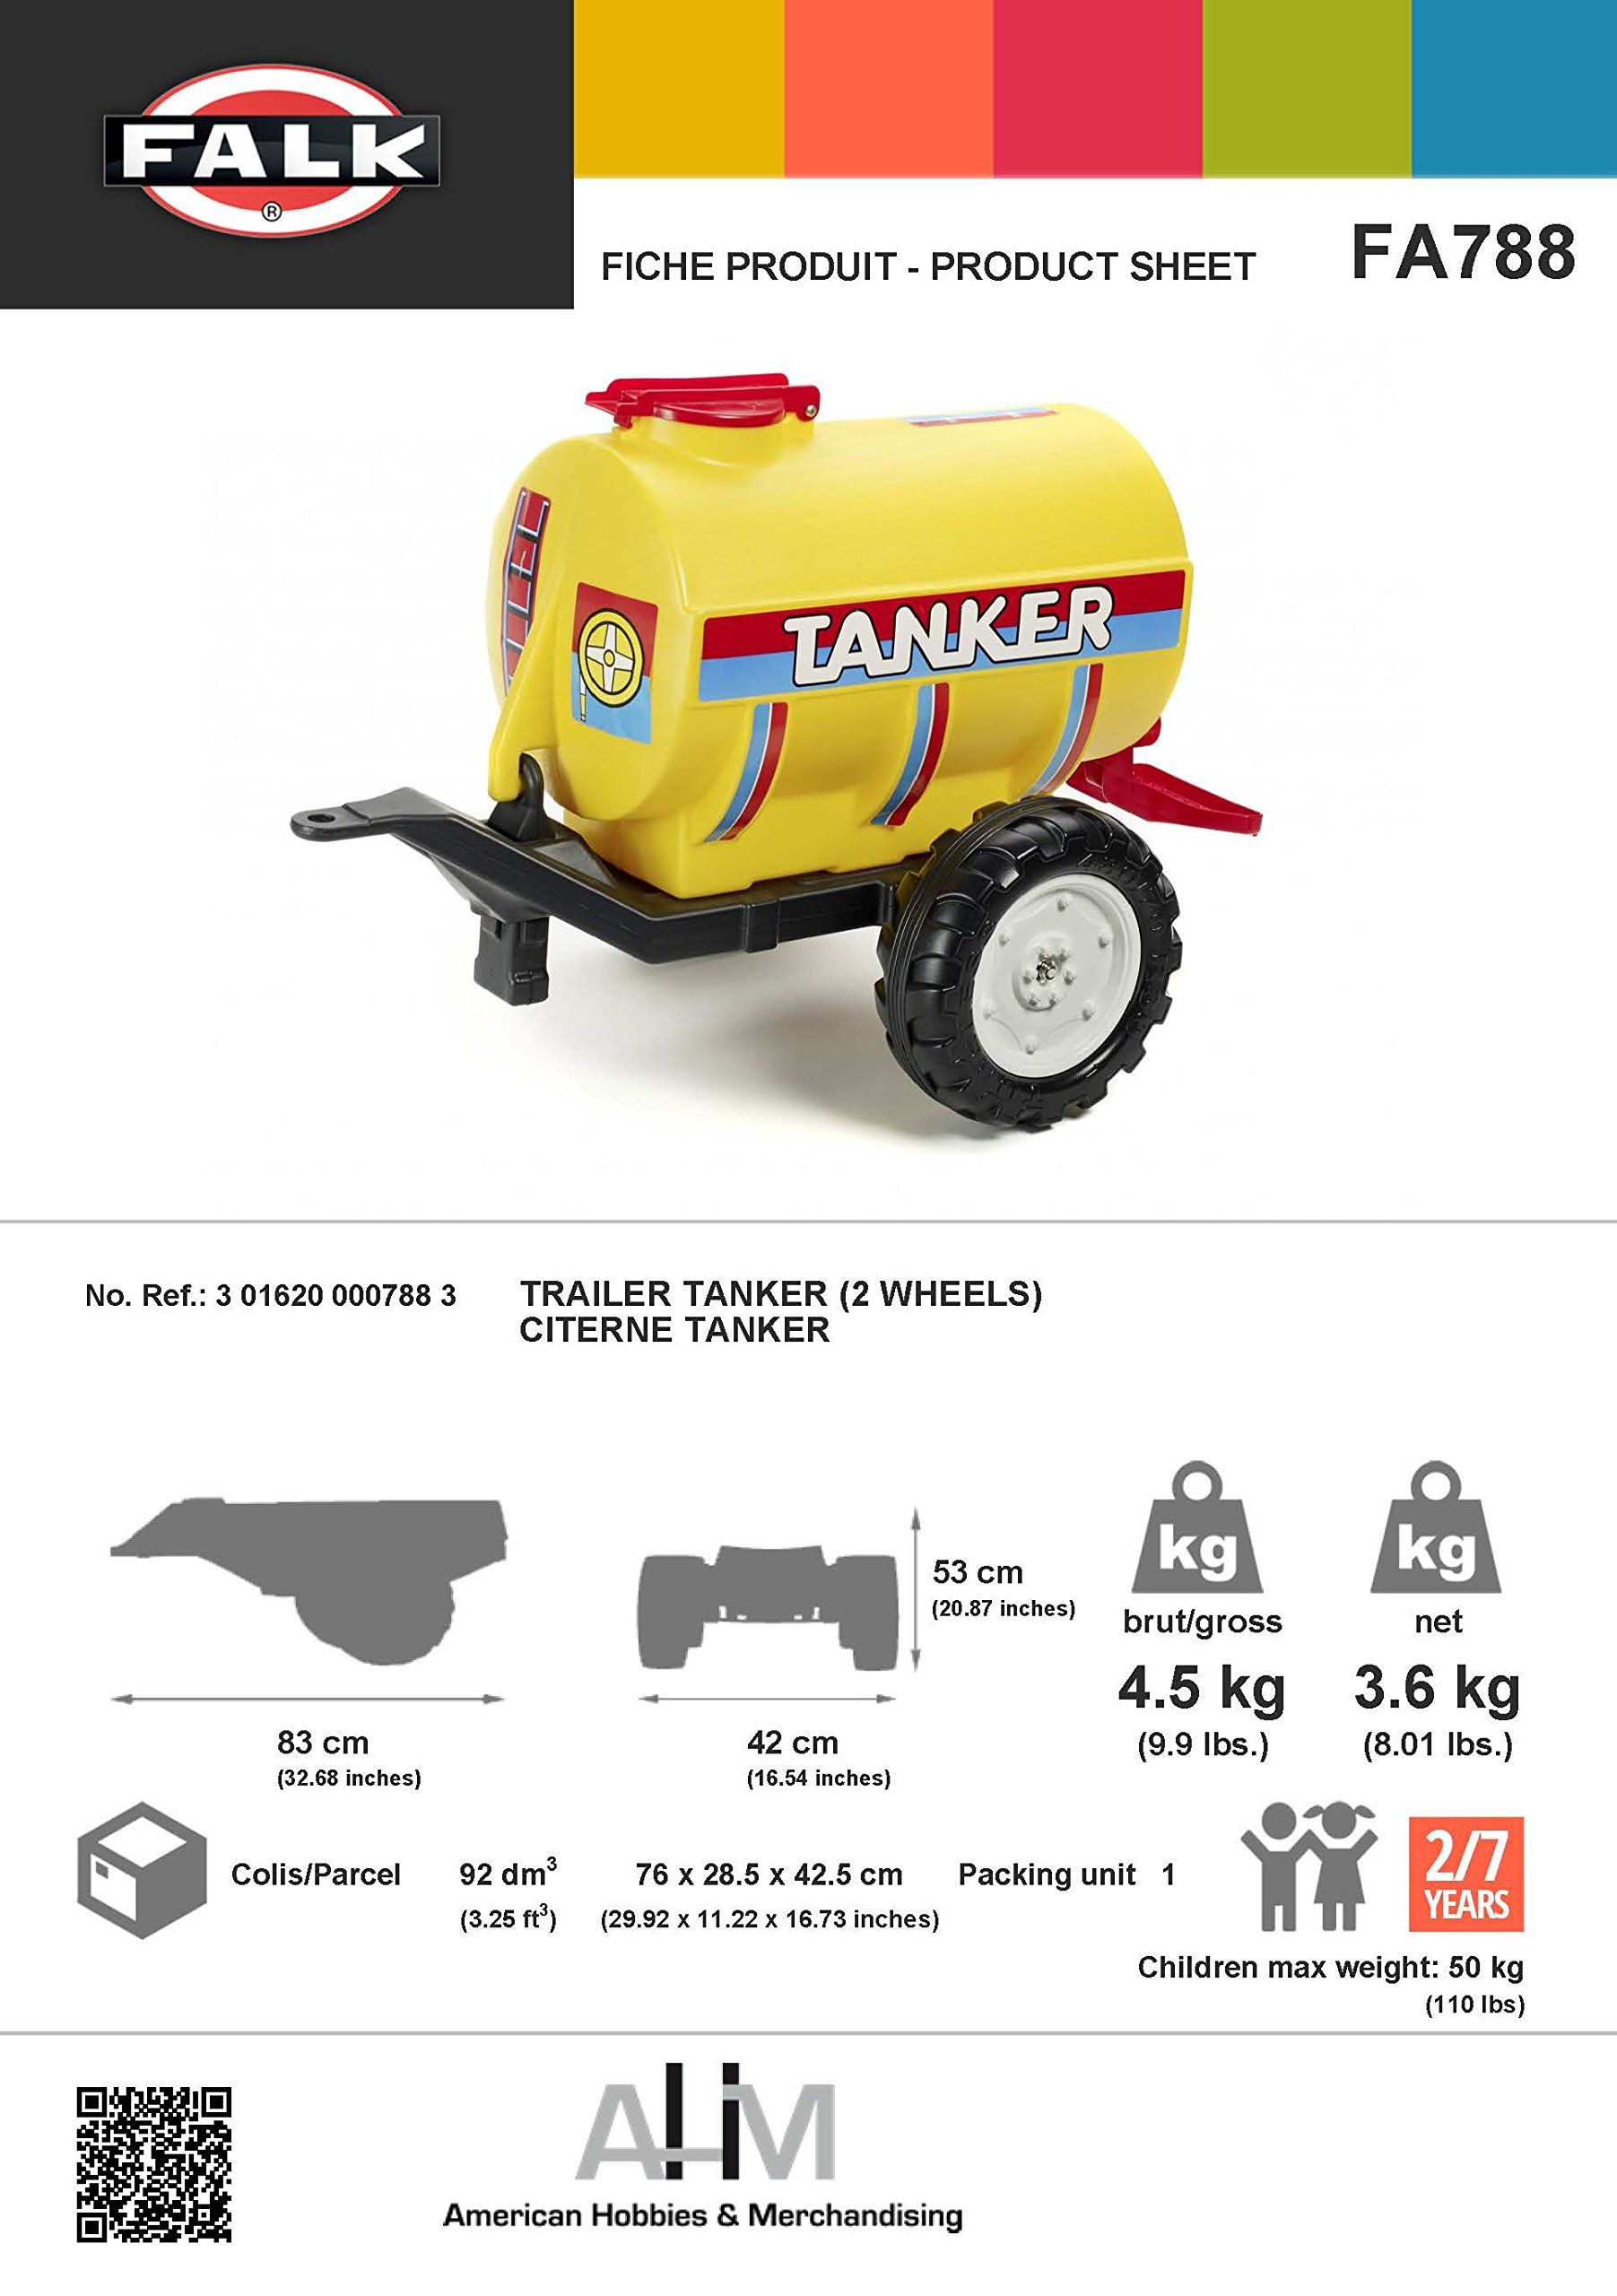 Falk Tanker Ride-on Trailer by Falk (Image #1)